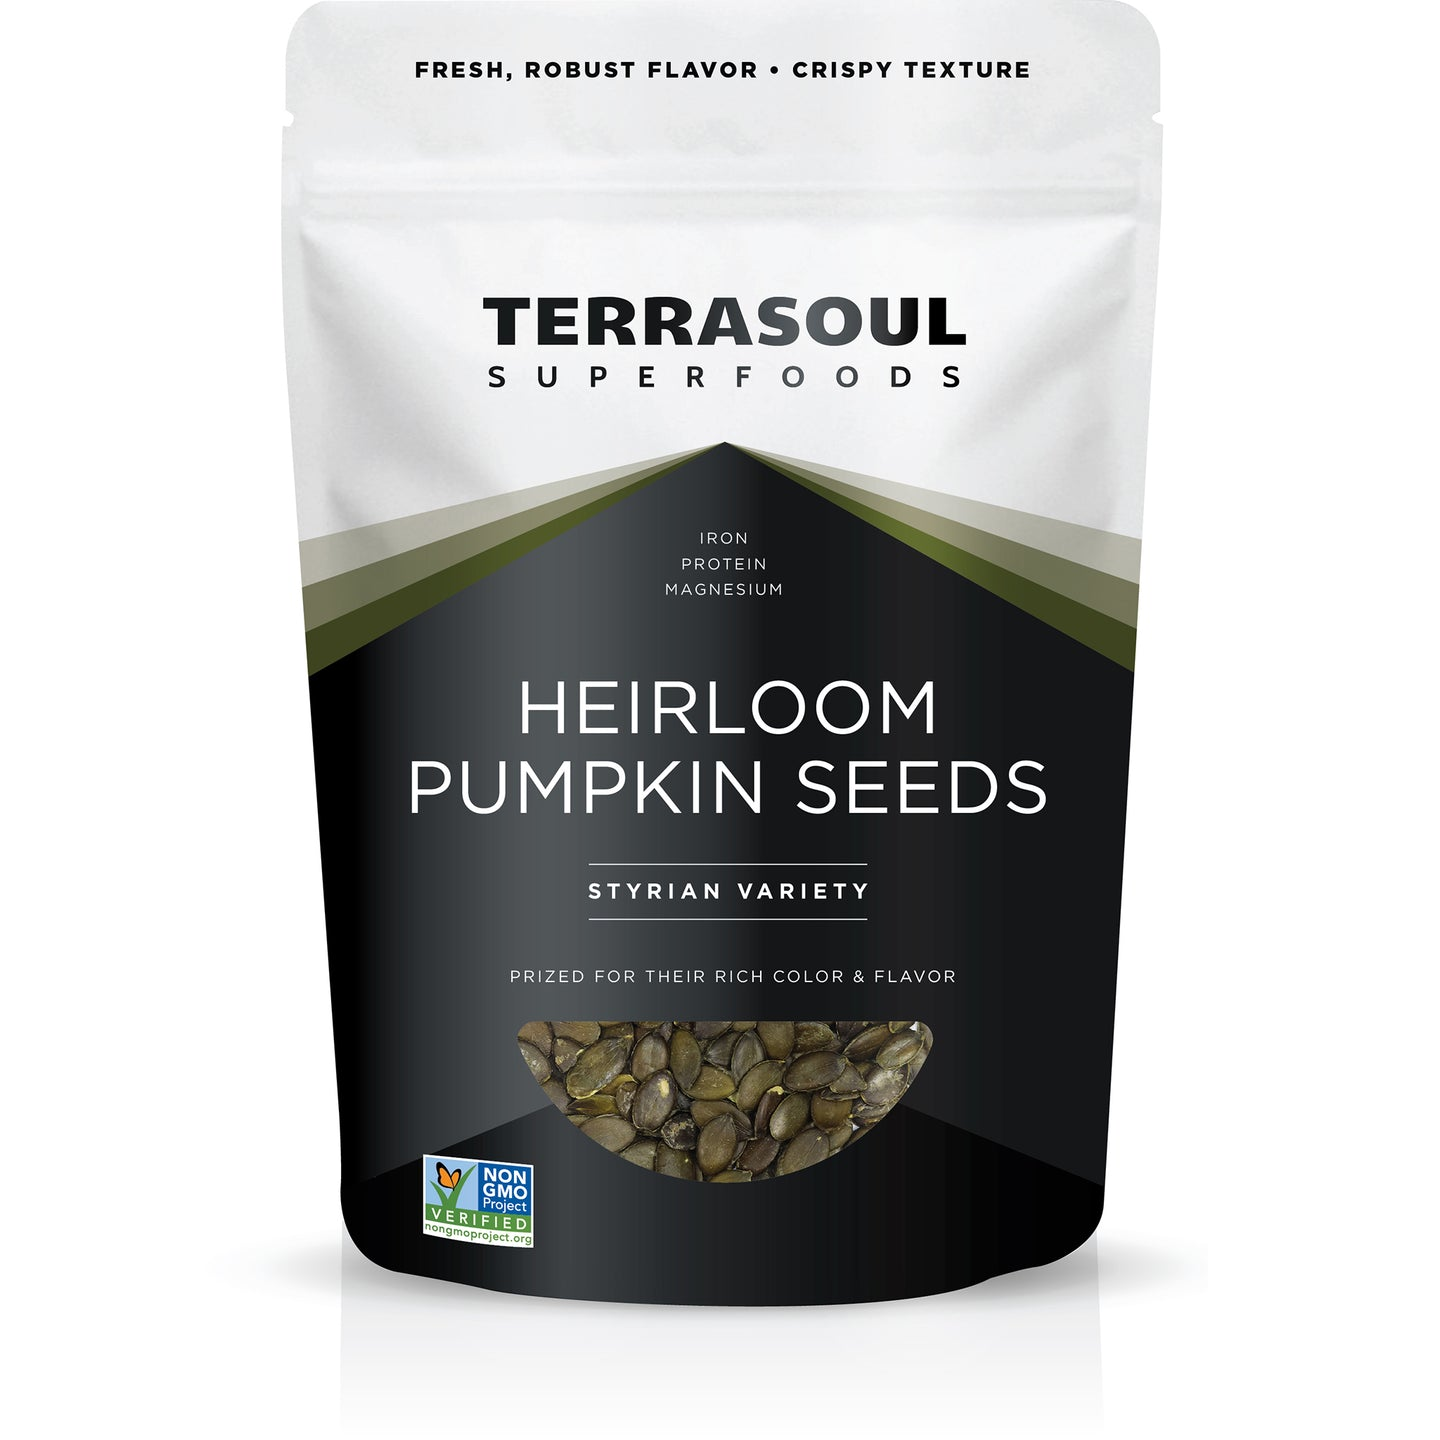 Pumpkin Seeds (Heirloom)